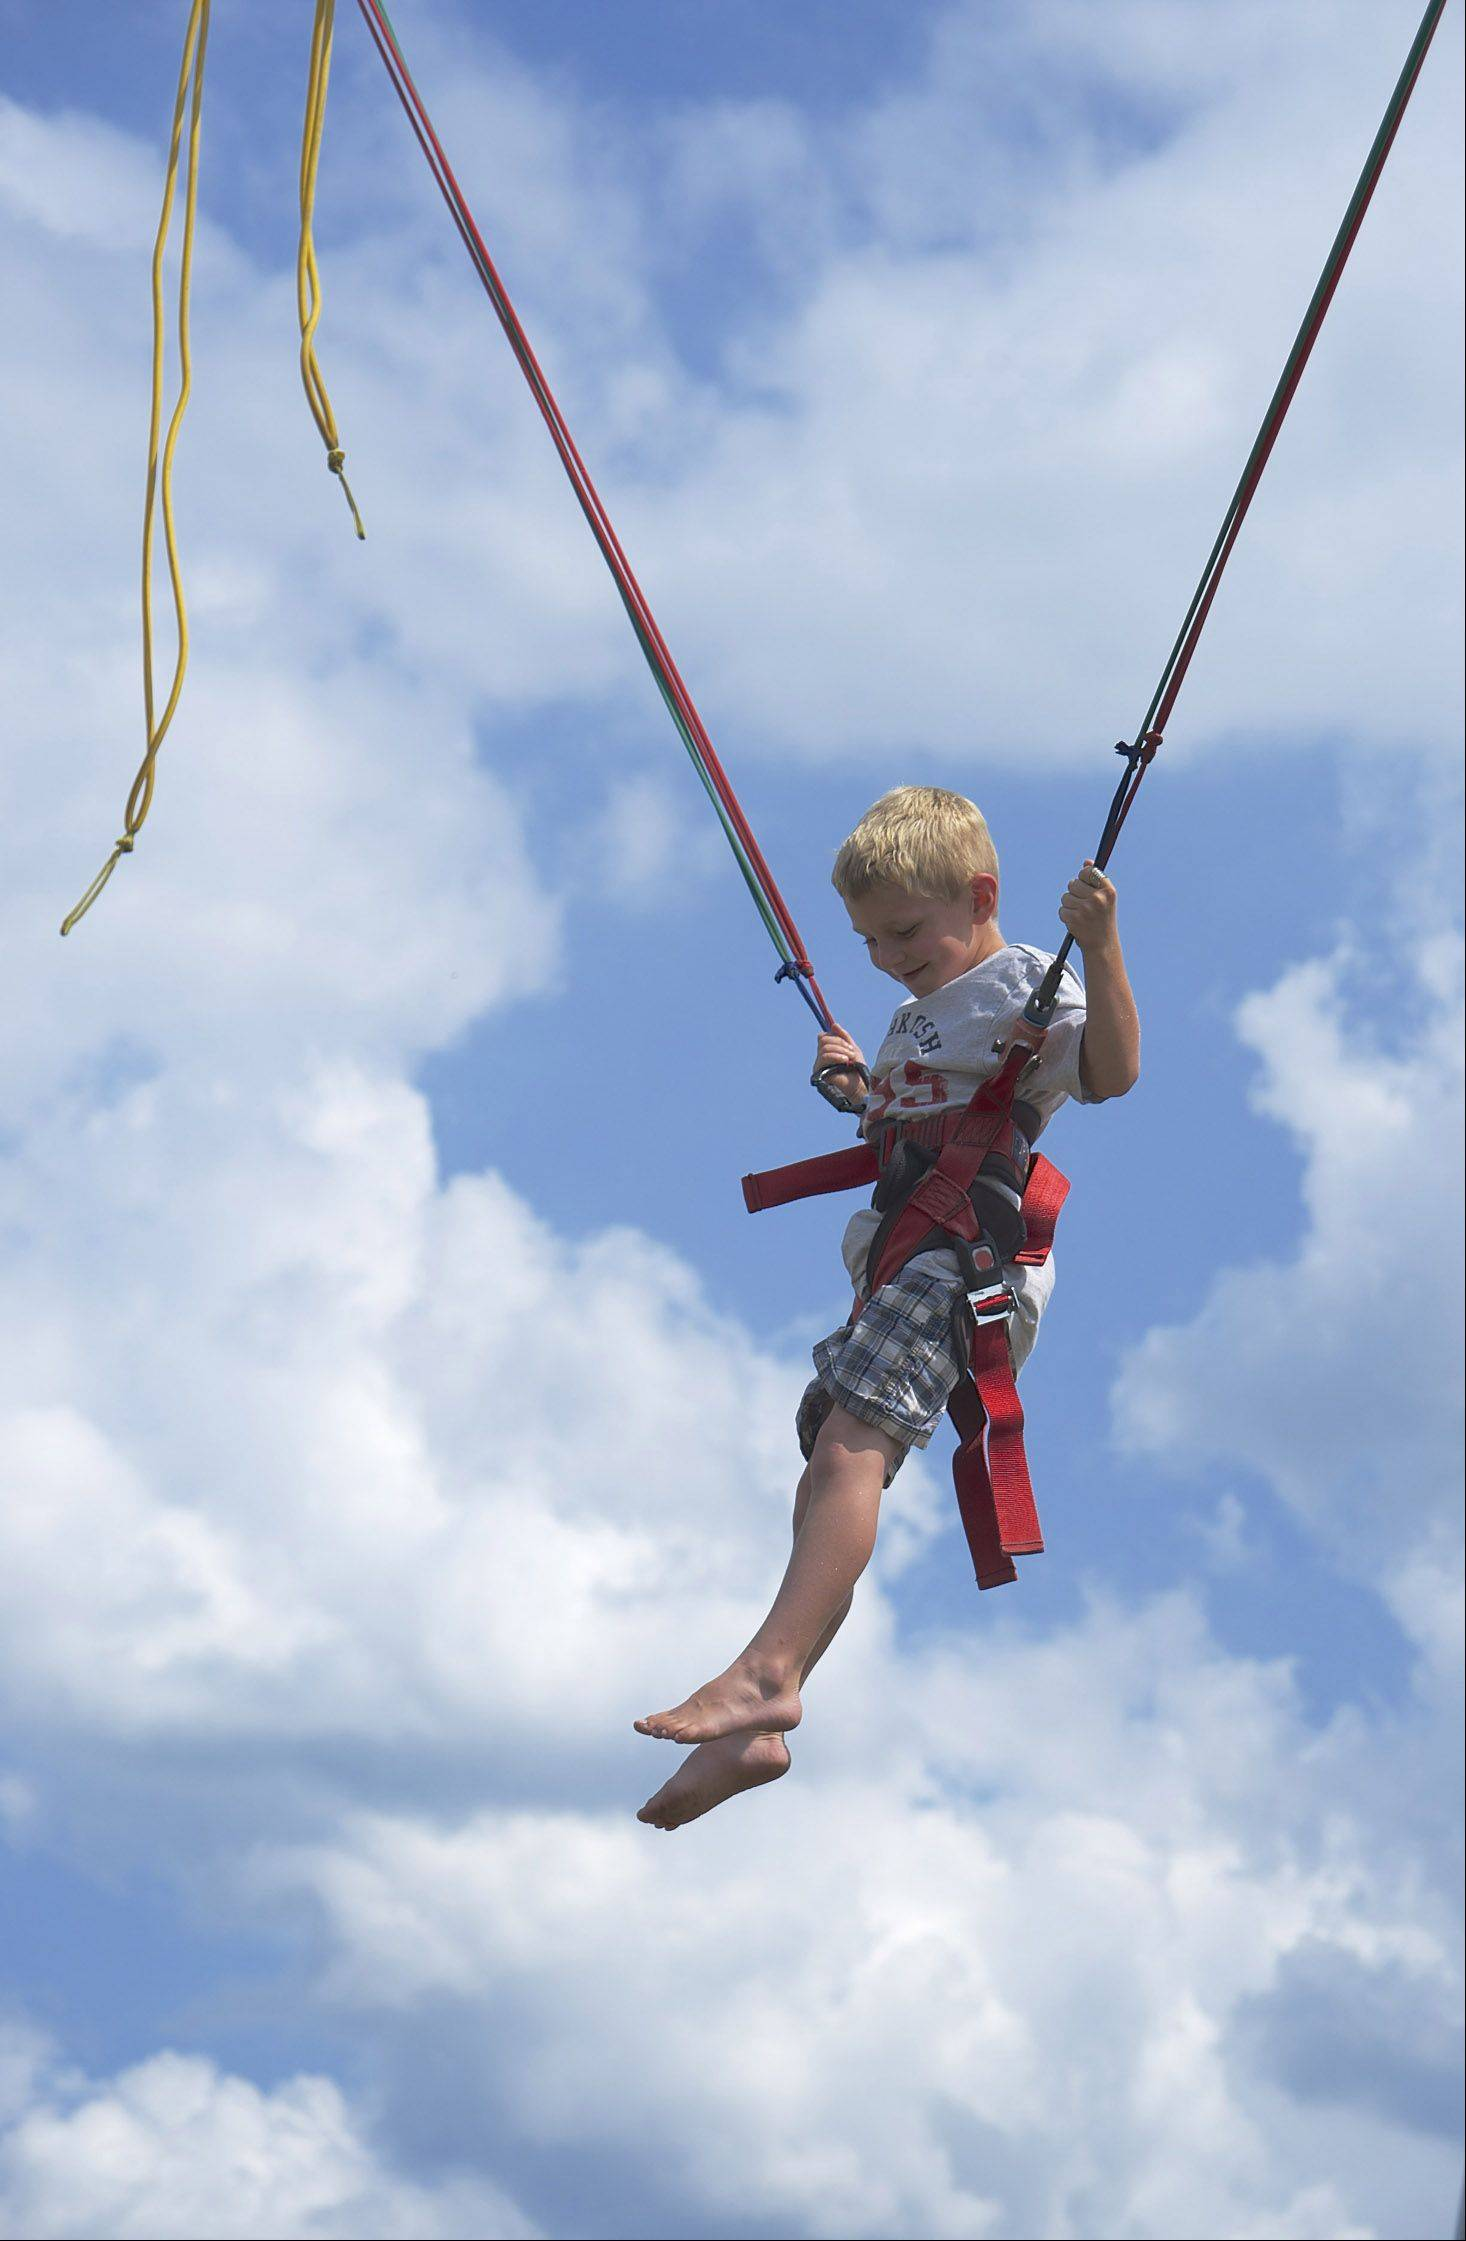 At the Kenosha County Fair, a young boy is all smiles after he takes a challenge and tries bungee jumping.